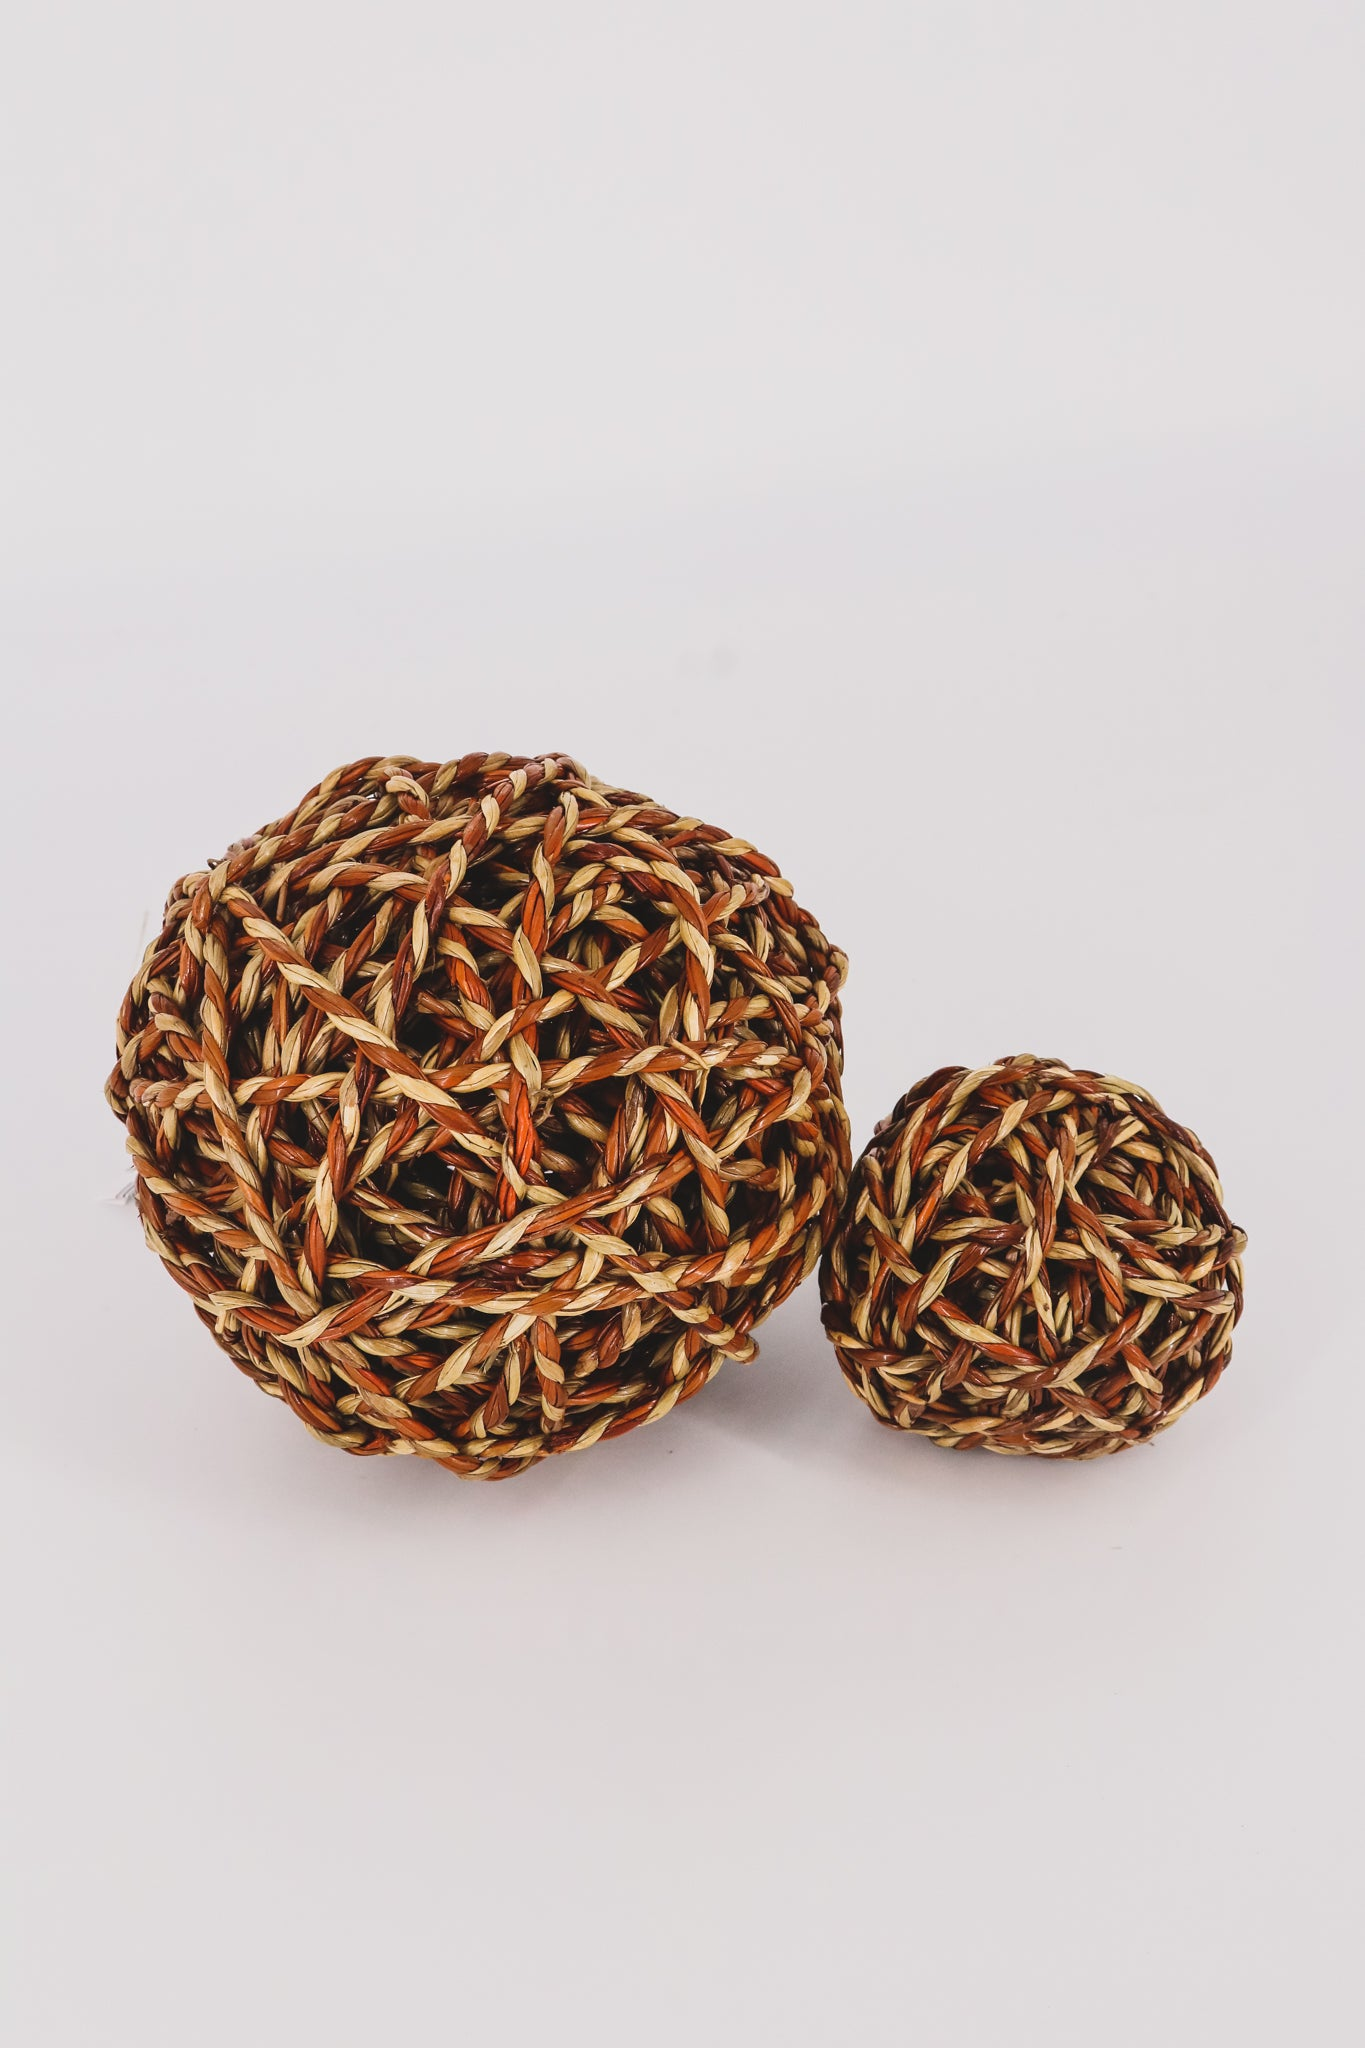 Natural Fiber Woven Orb 1 - JQ Clothing Co. - Oakes, ND